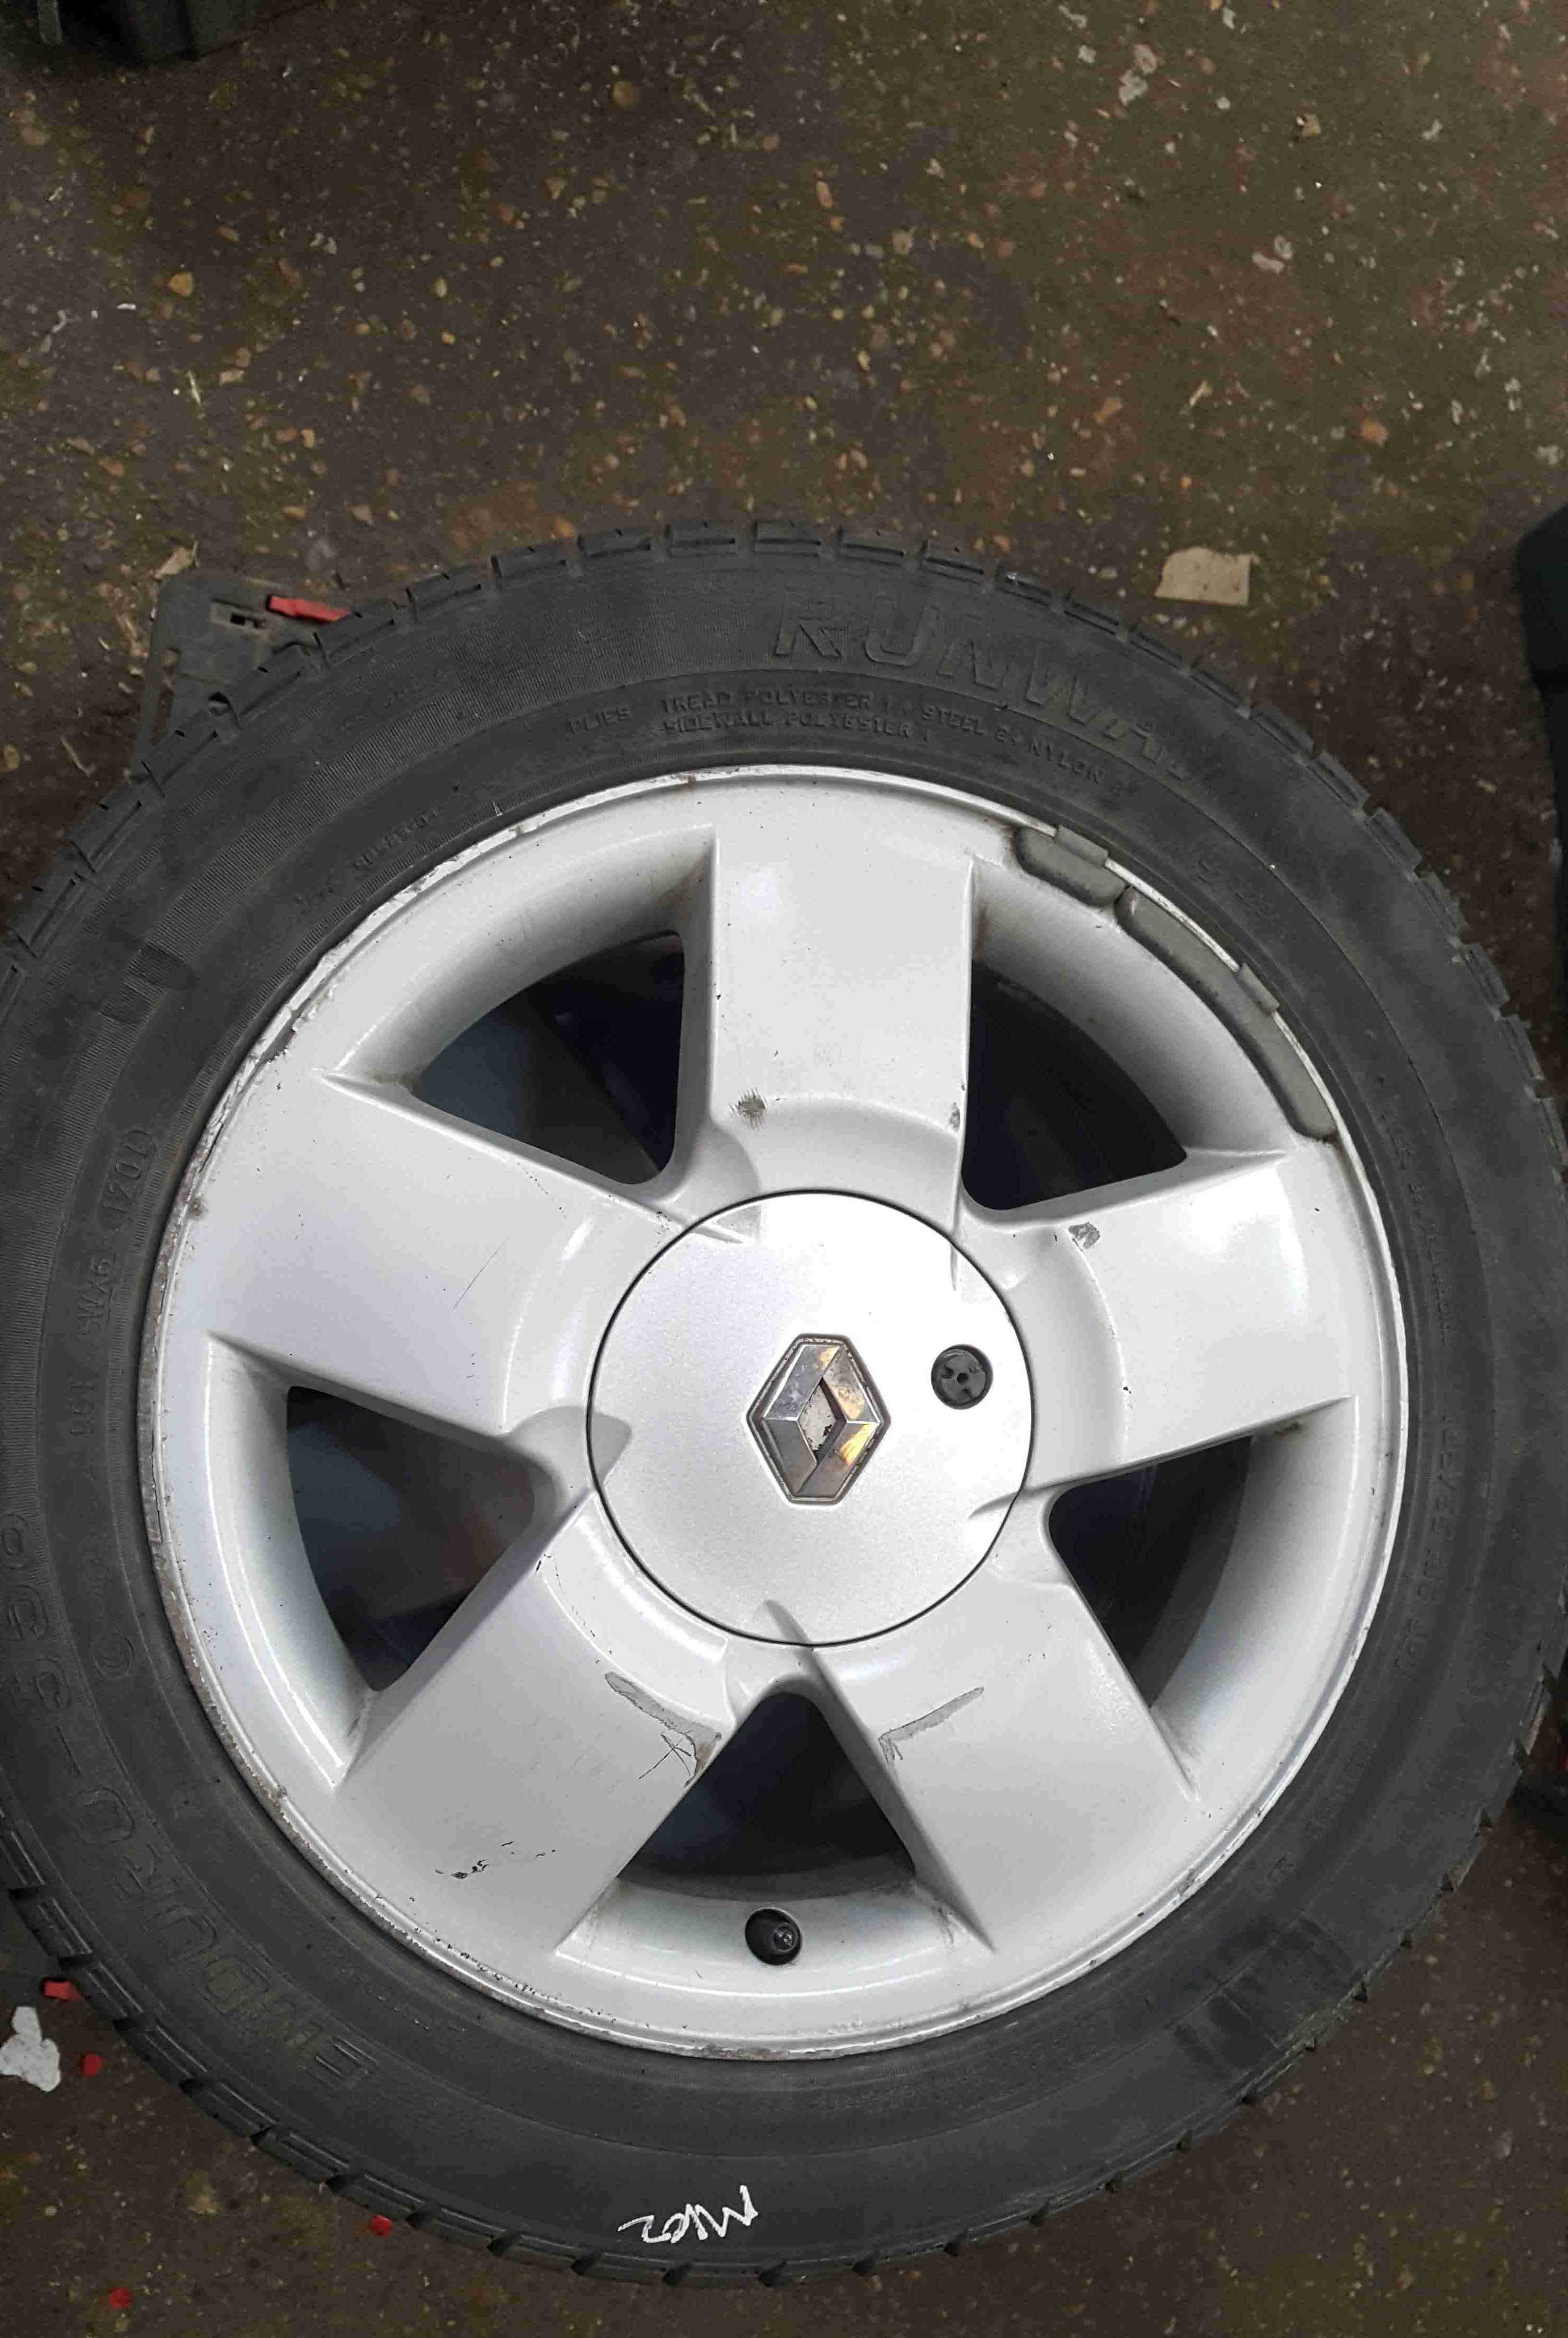 Renault Clio MK2 2001-2006 Equation Alloy Wheel 15inch + Tyre 185 55 15 6mm